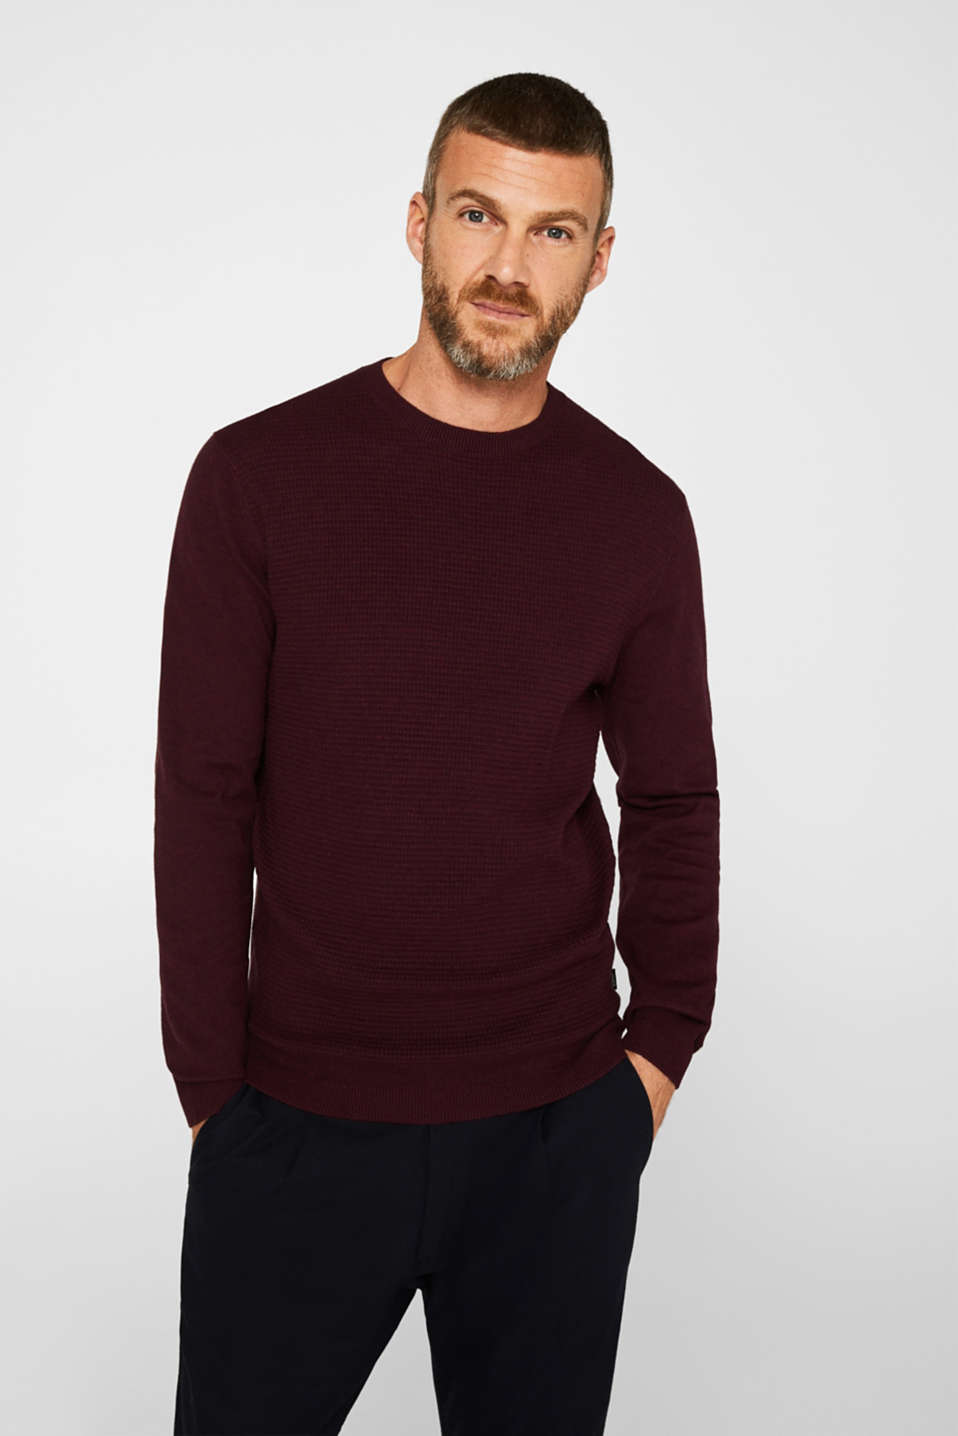 Cashmere blend: textured knit jumper, BORDEAUX RED 5, detail image number 0